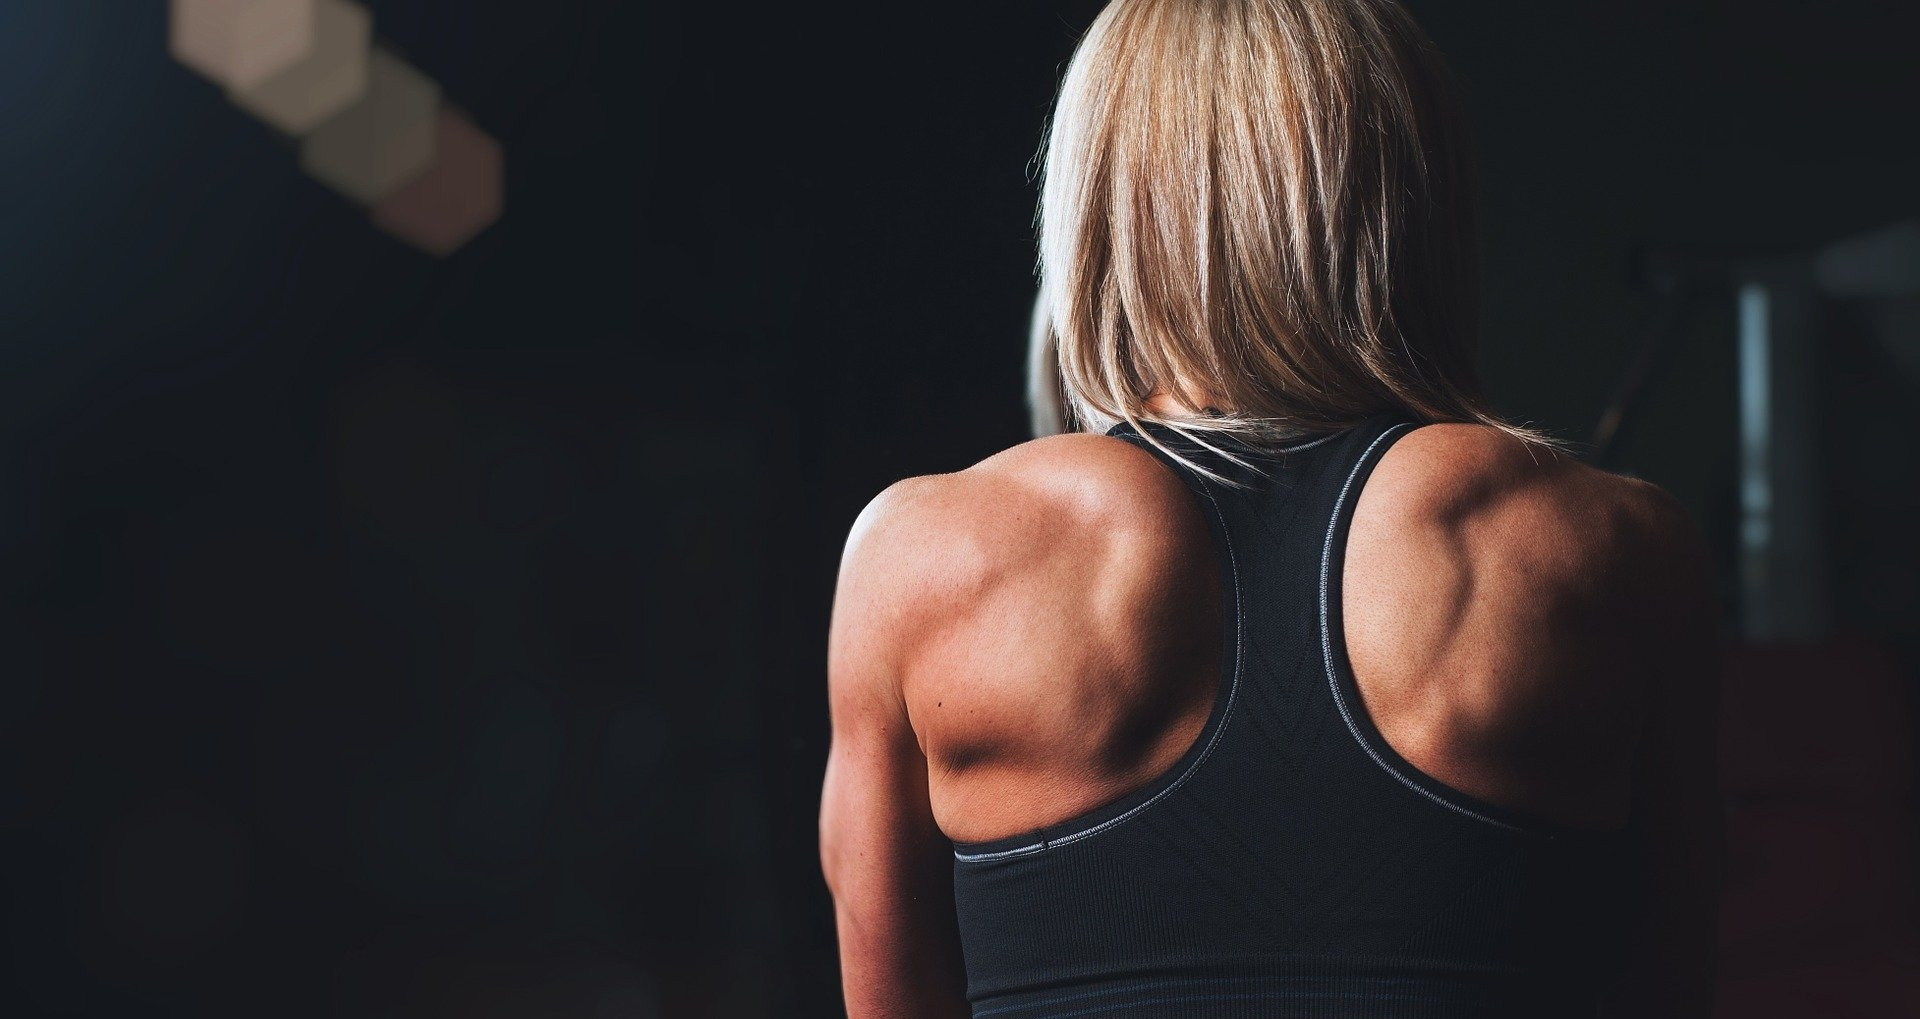 Woman's back whilst working out on dark background